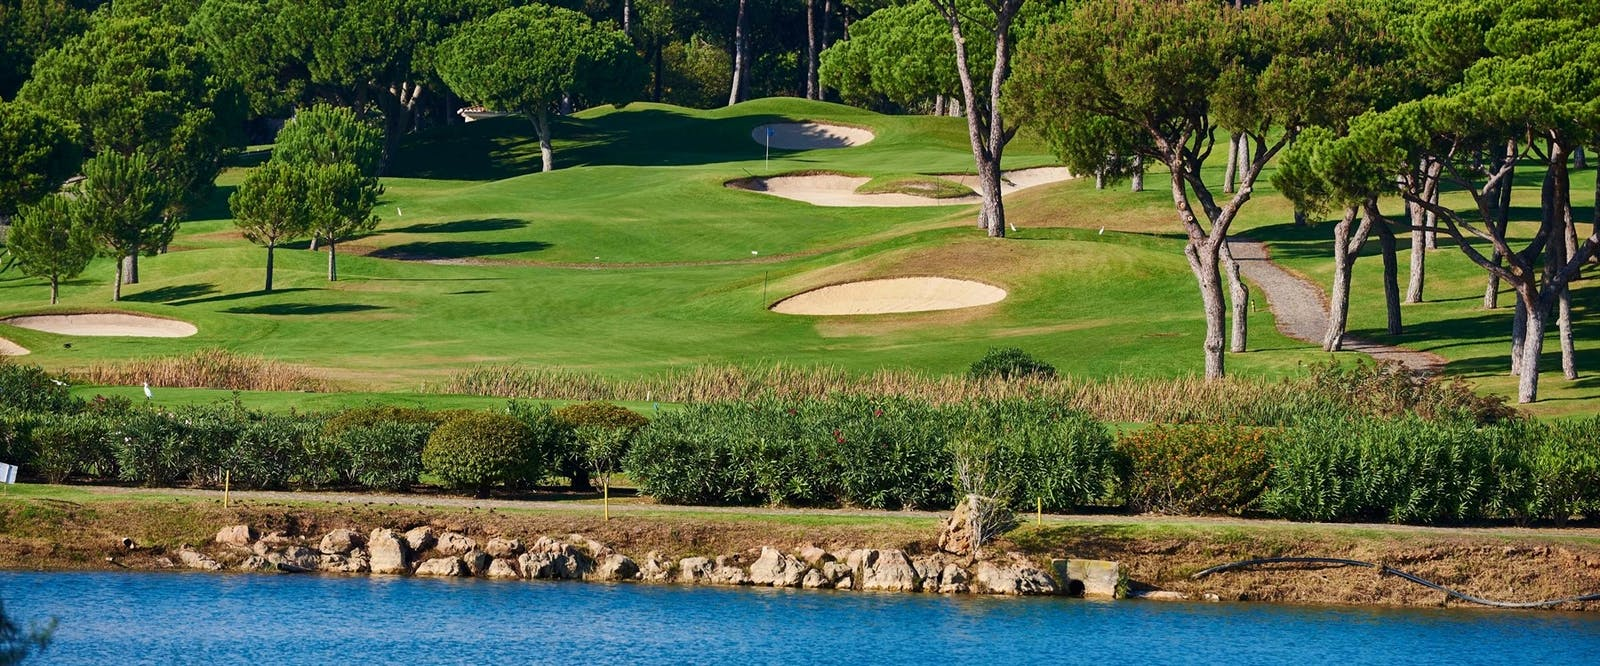 Golf Course at Martinhal Quinta Family Resort, Algarve